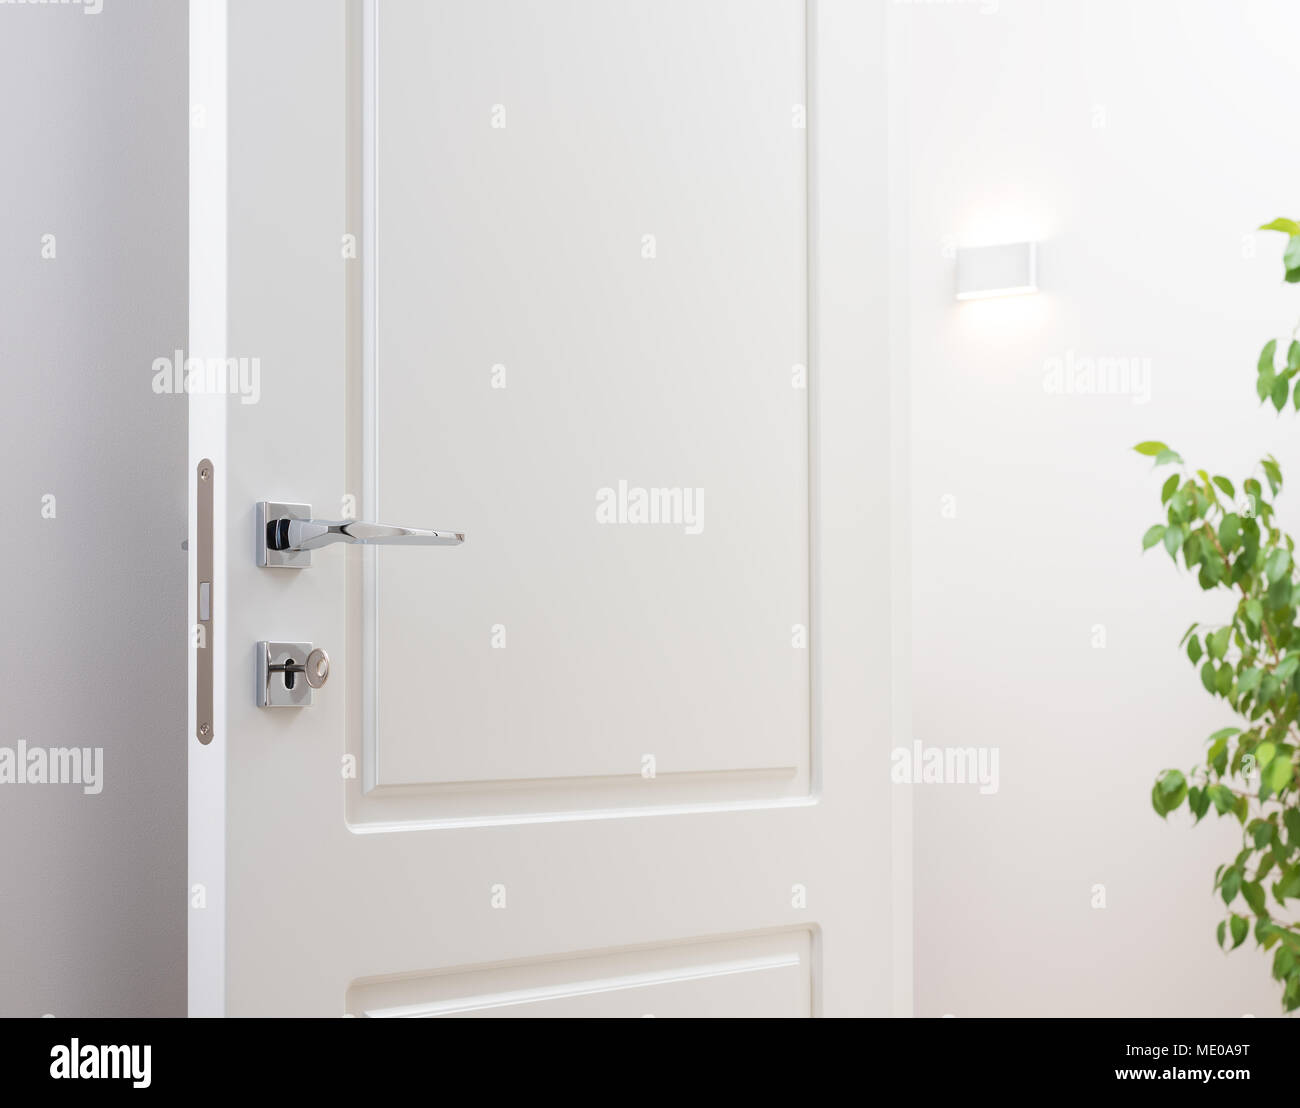 modern white interior door. The Open White Interior Doors. Modern Chrome Handle And Lock With Key. Wall Lamp Green Plant In Background Door